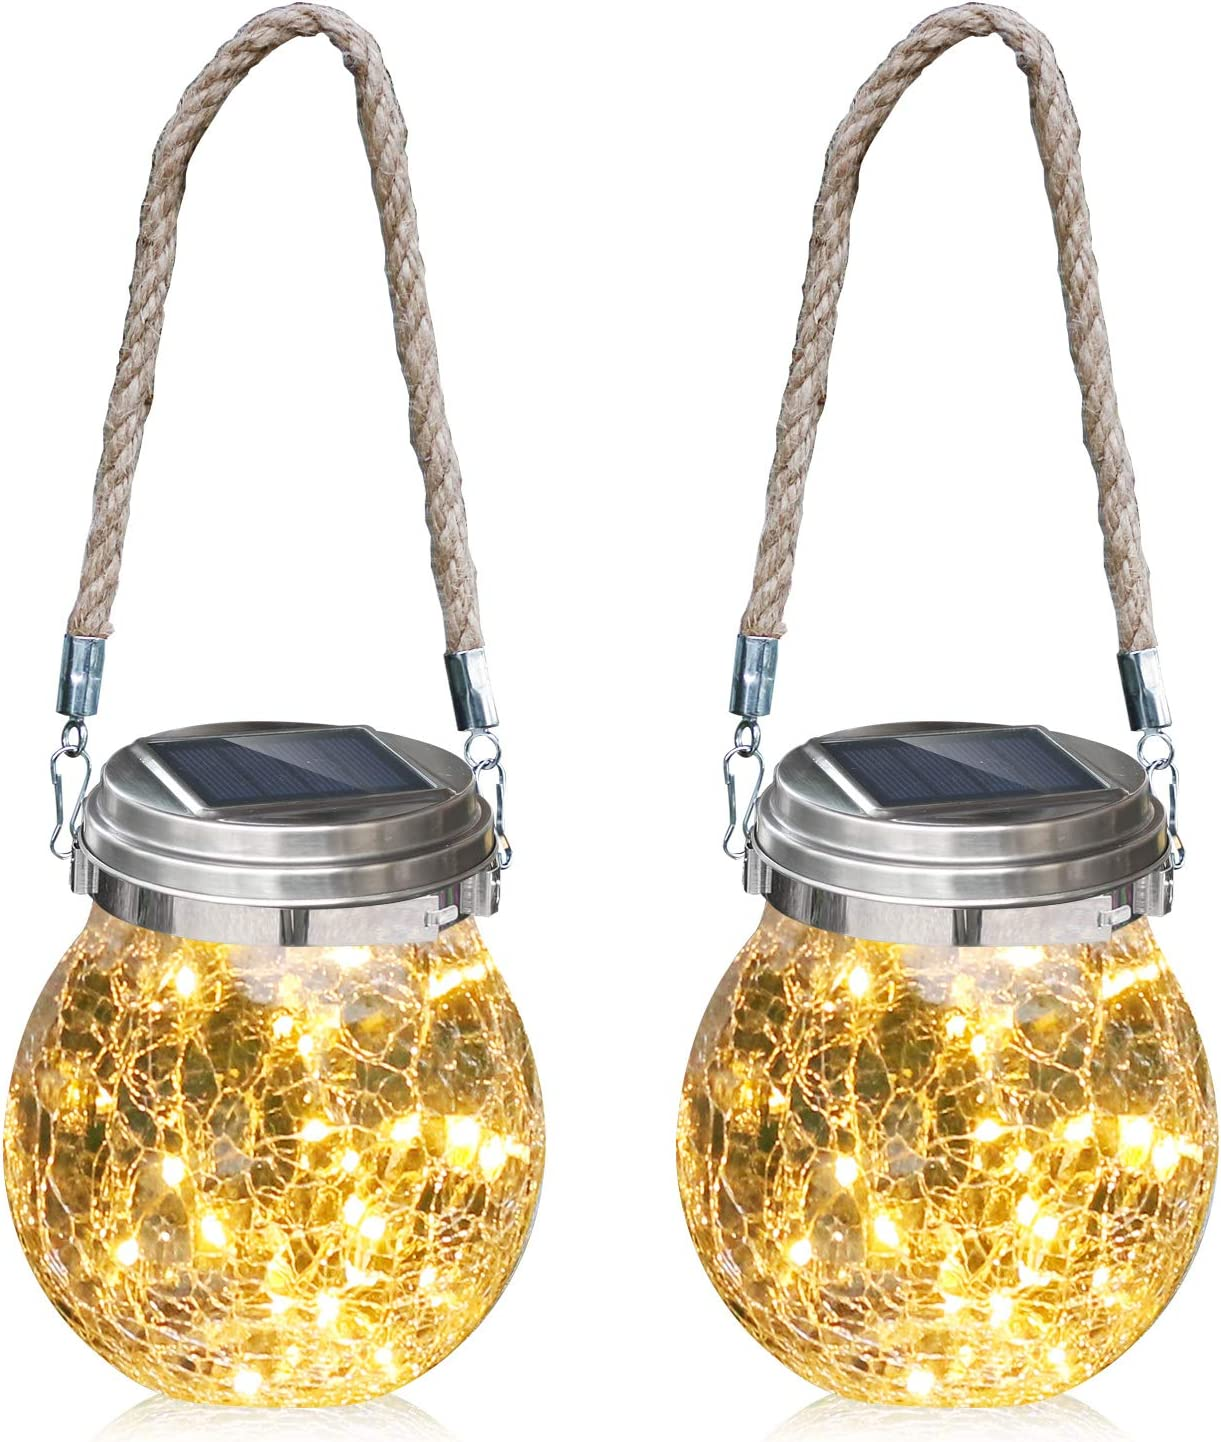 Solar Glass Lights Hanging 2 Pack Solar Lights Outdoor Waterproof,[ 30 LED Warm White Light]Garden Chandelier Table lamp,Solar Lights Courtyard Garden Lights Table lamp, Garden Party Atmosphere Light